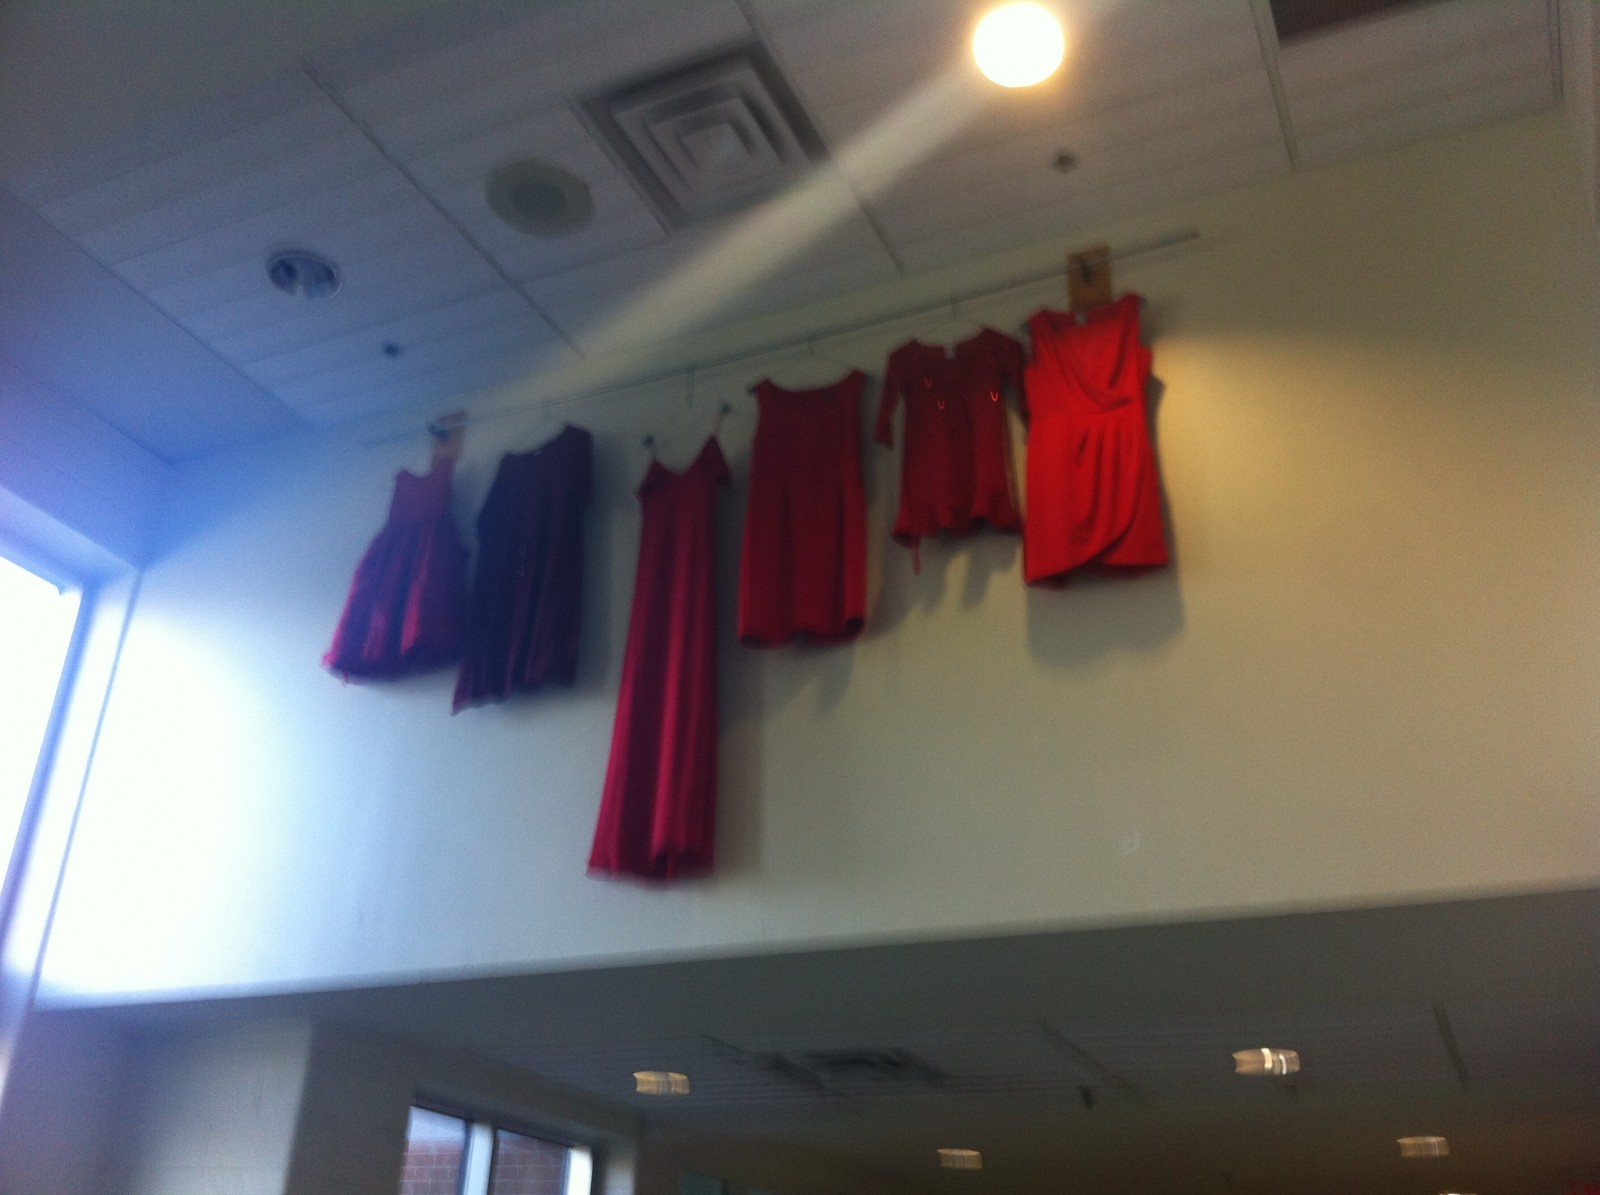 13 red dresses for missing and murdered Indigenous women